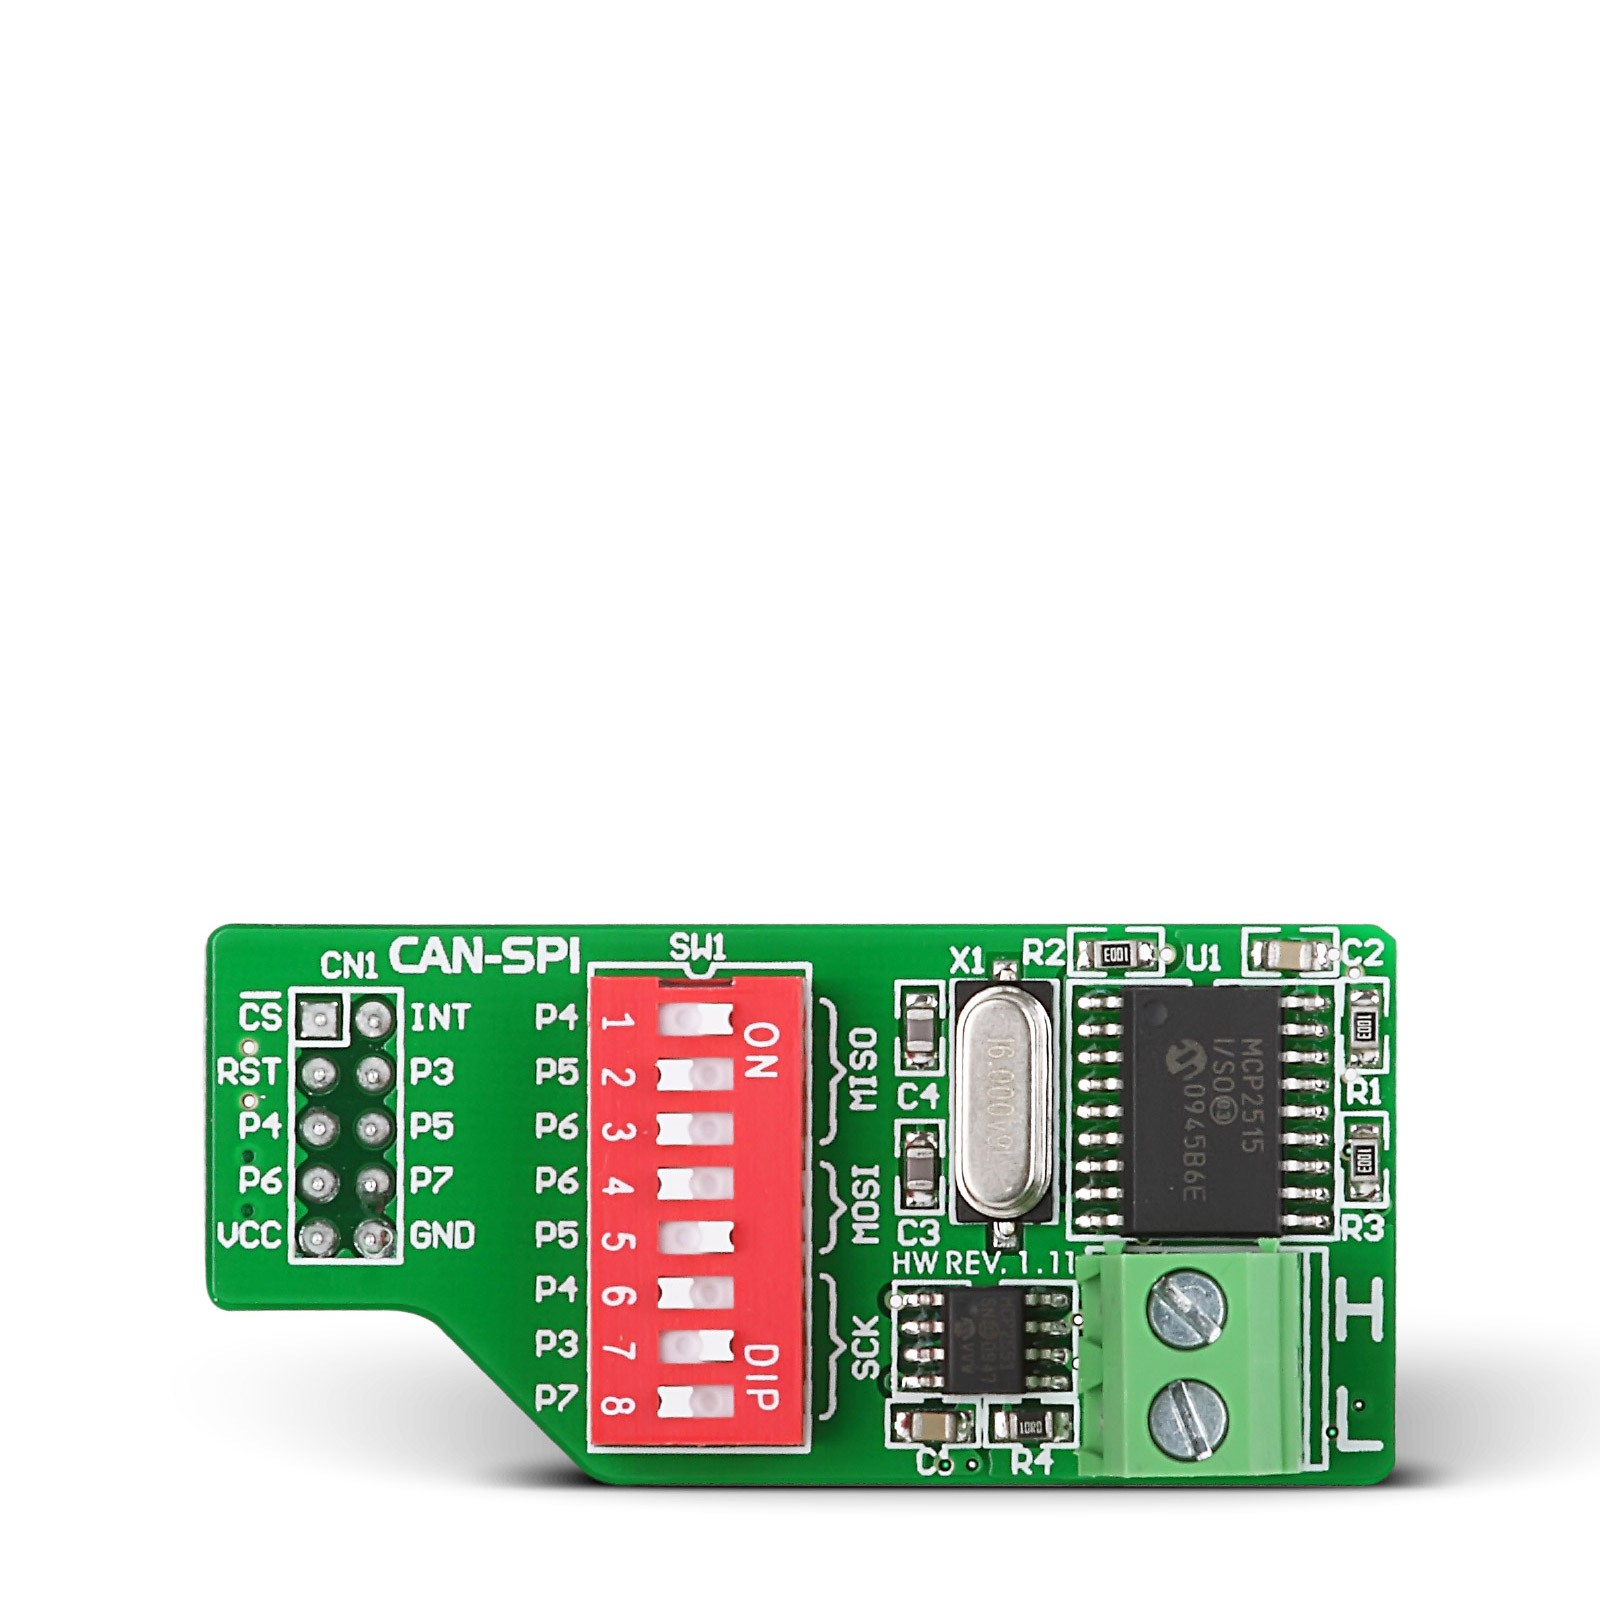 CANSPI Board - Serial CAN Interface with MCP2515 Transciever